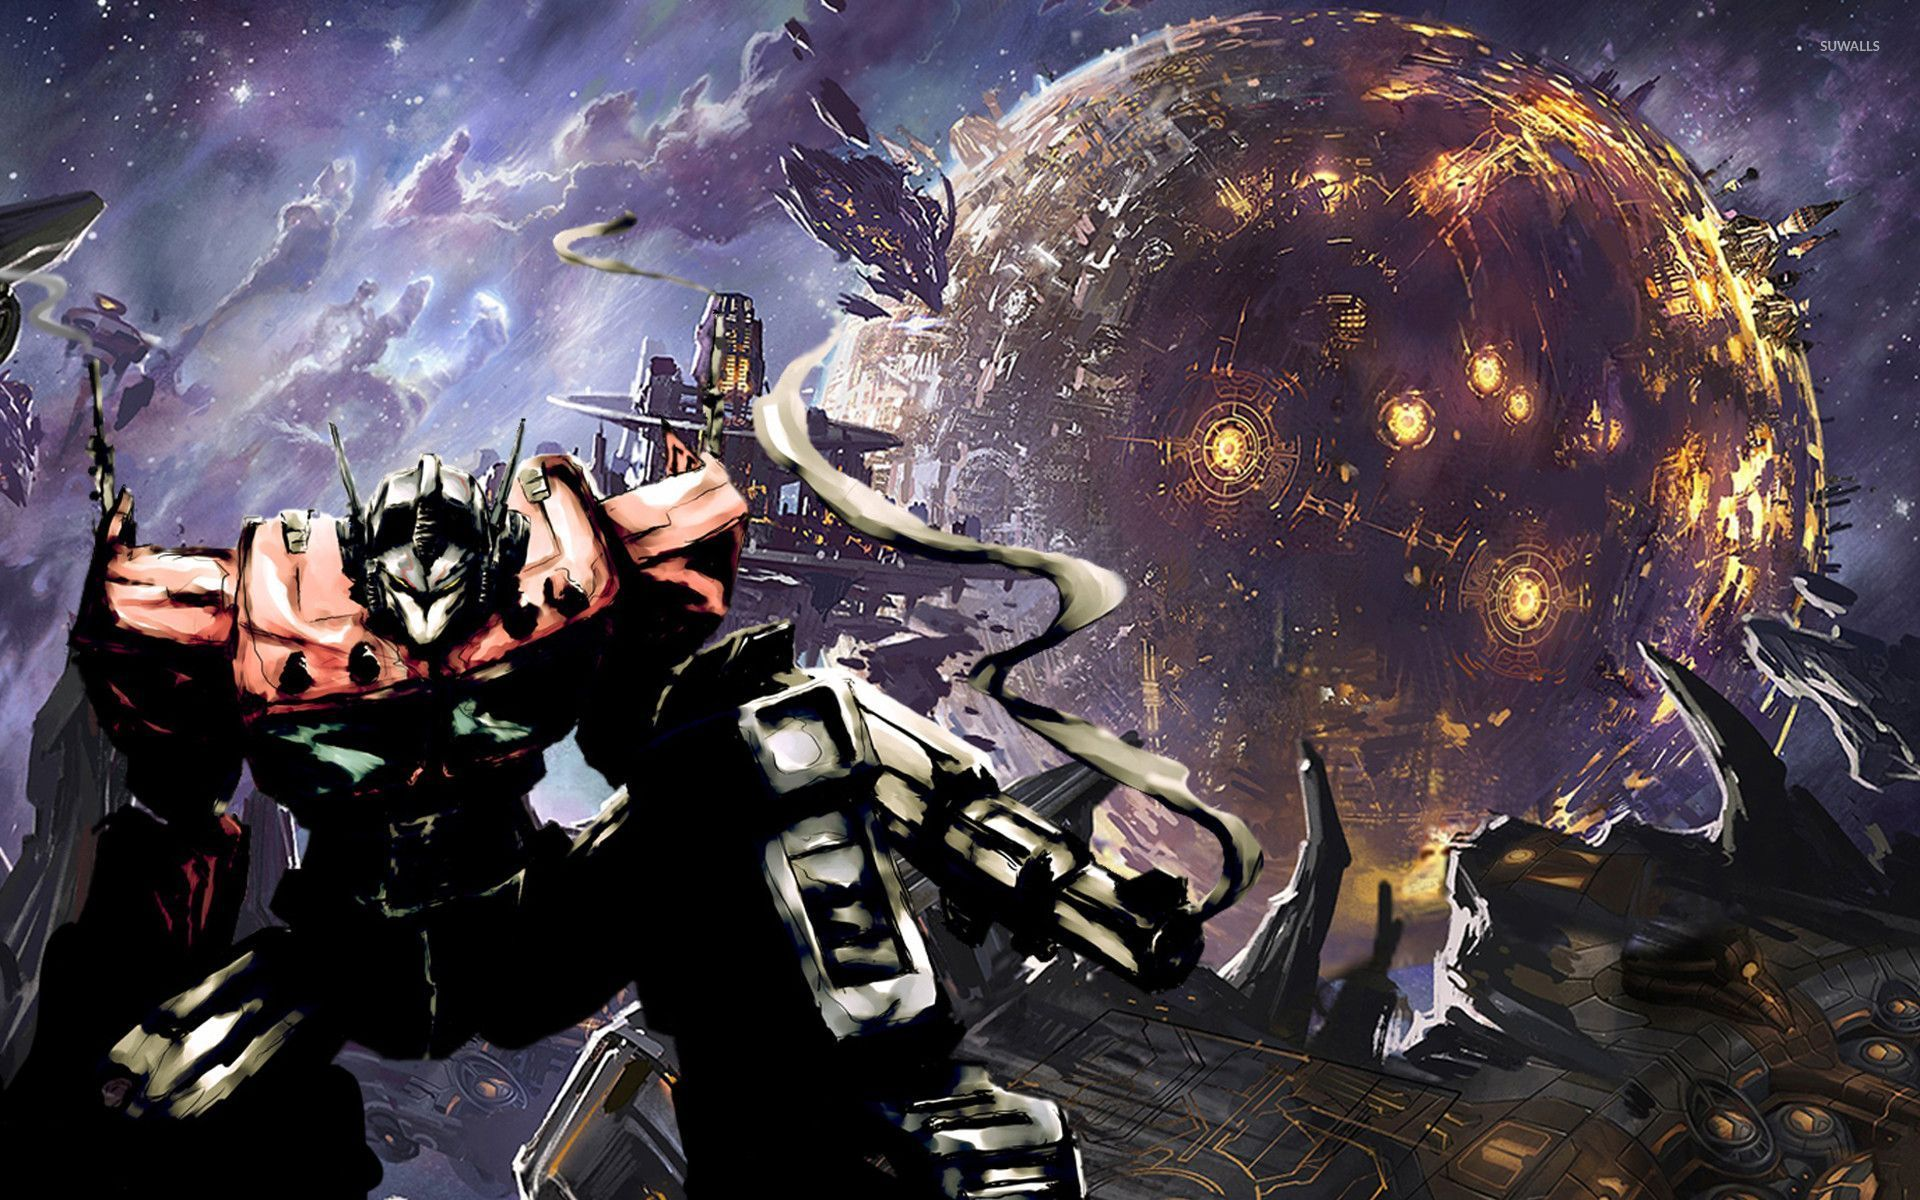 transformers - war for cybertron wallpaper - comic wallpapers - #29392